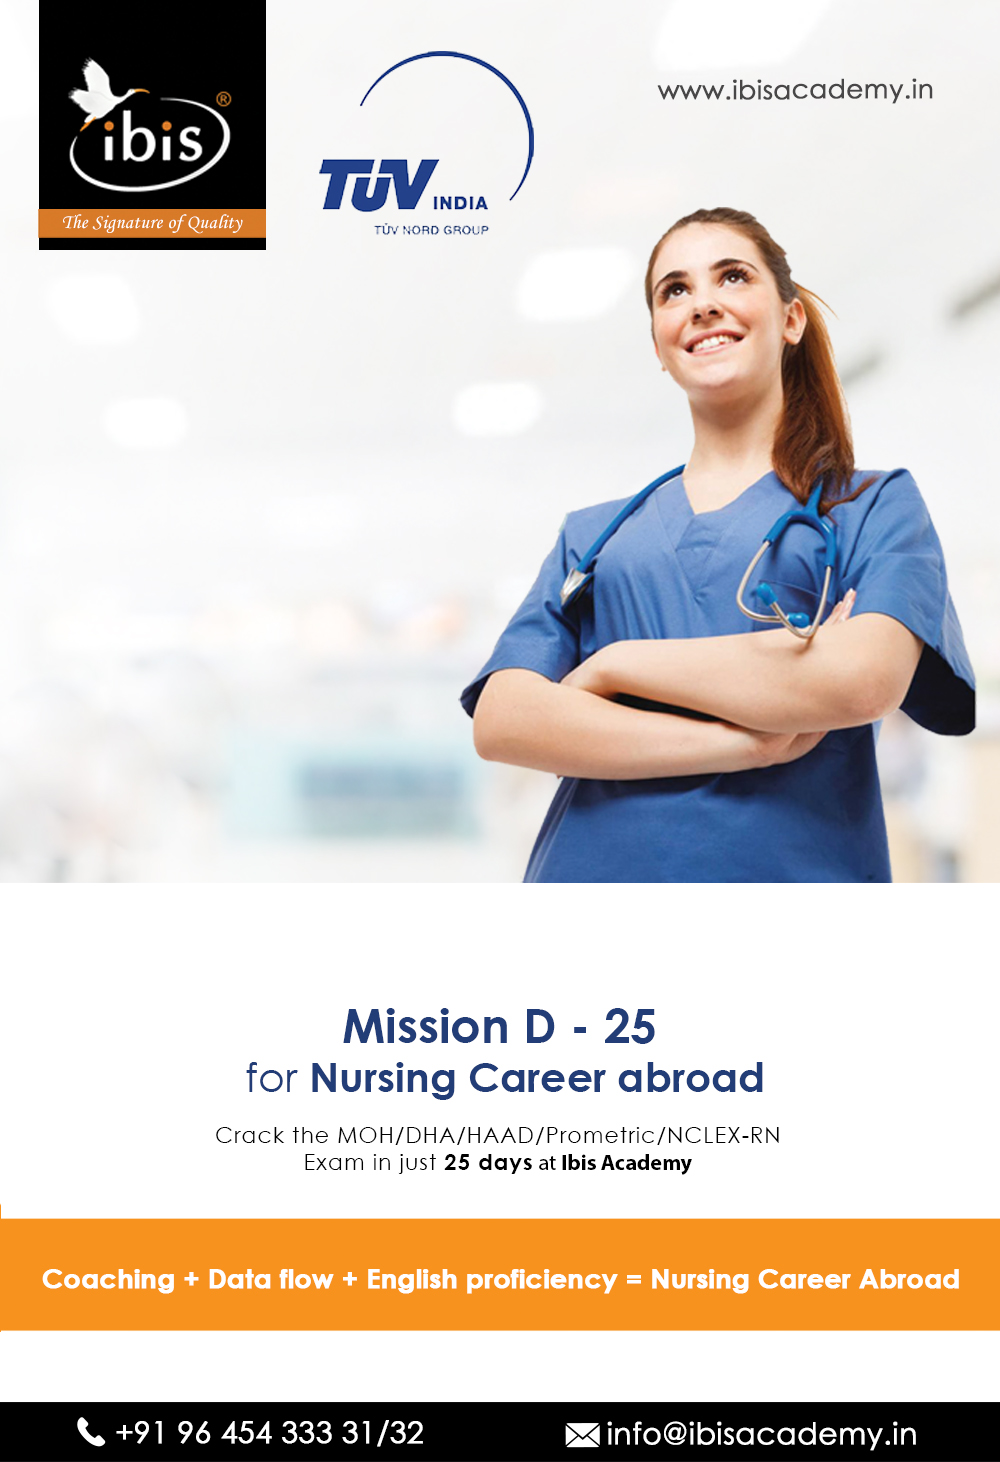 Coaching for MOH, DHA, HAAD, Prometric, HAAD, NCLEX-RN, BLS and ACLS